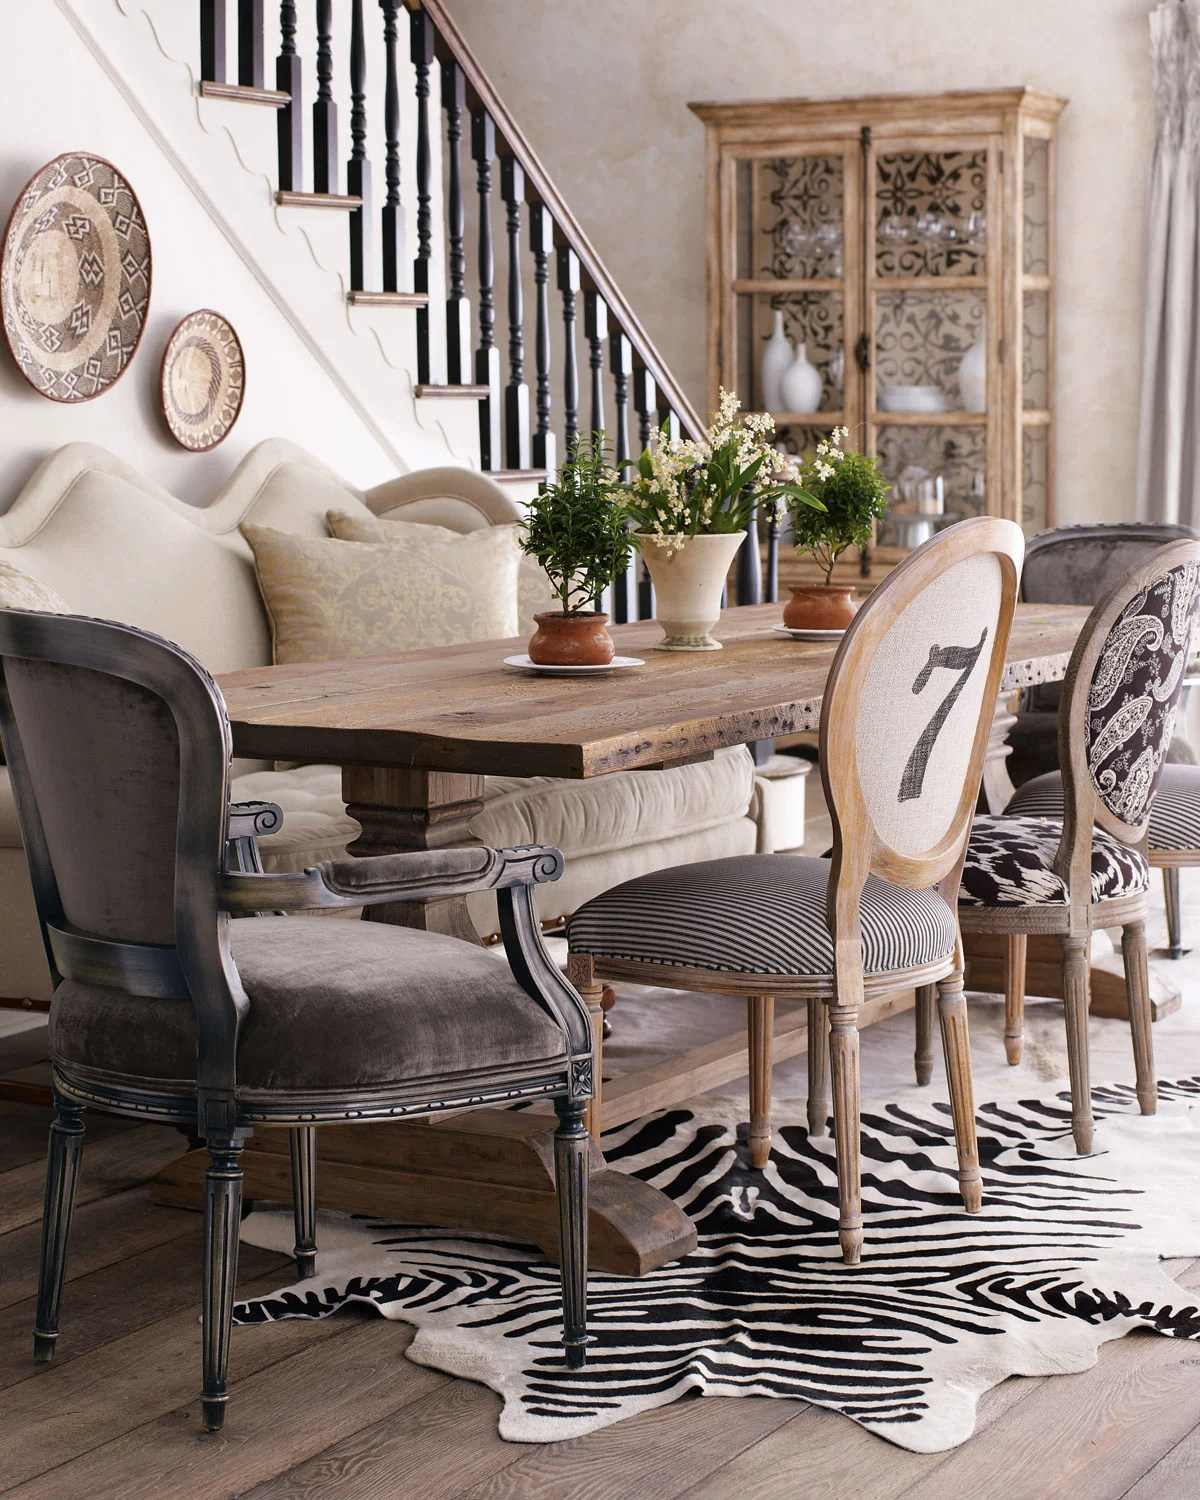 faux leather sofa india upholstery repair how to mix & match dining chairs - tidbits&twine